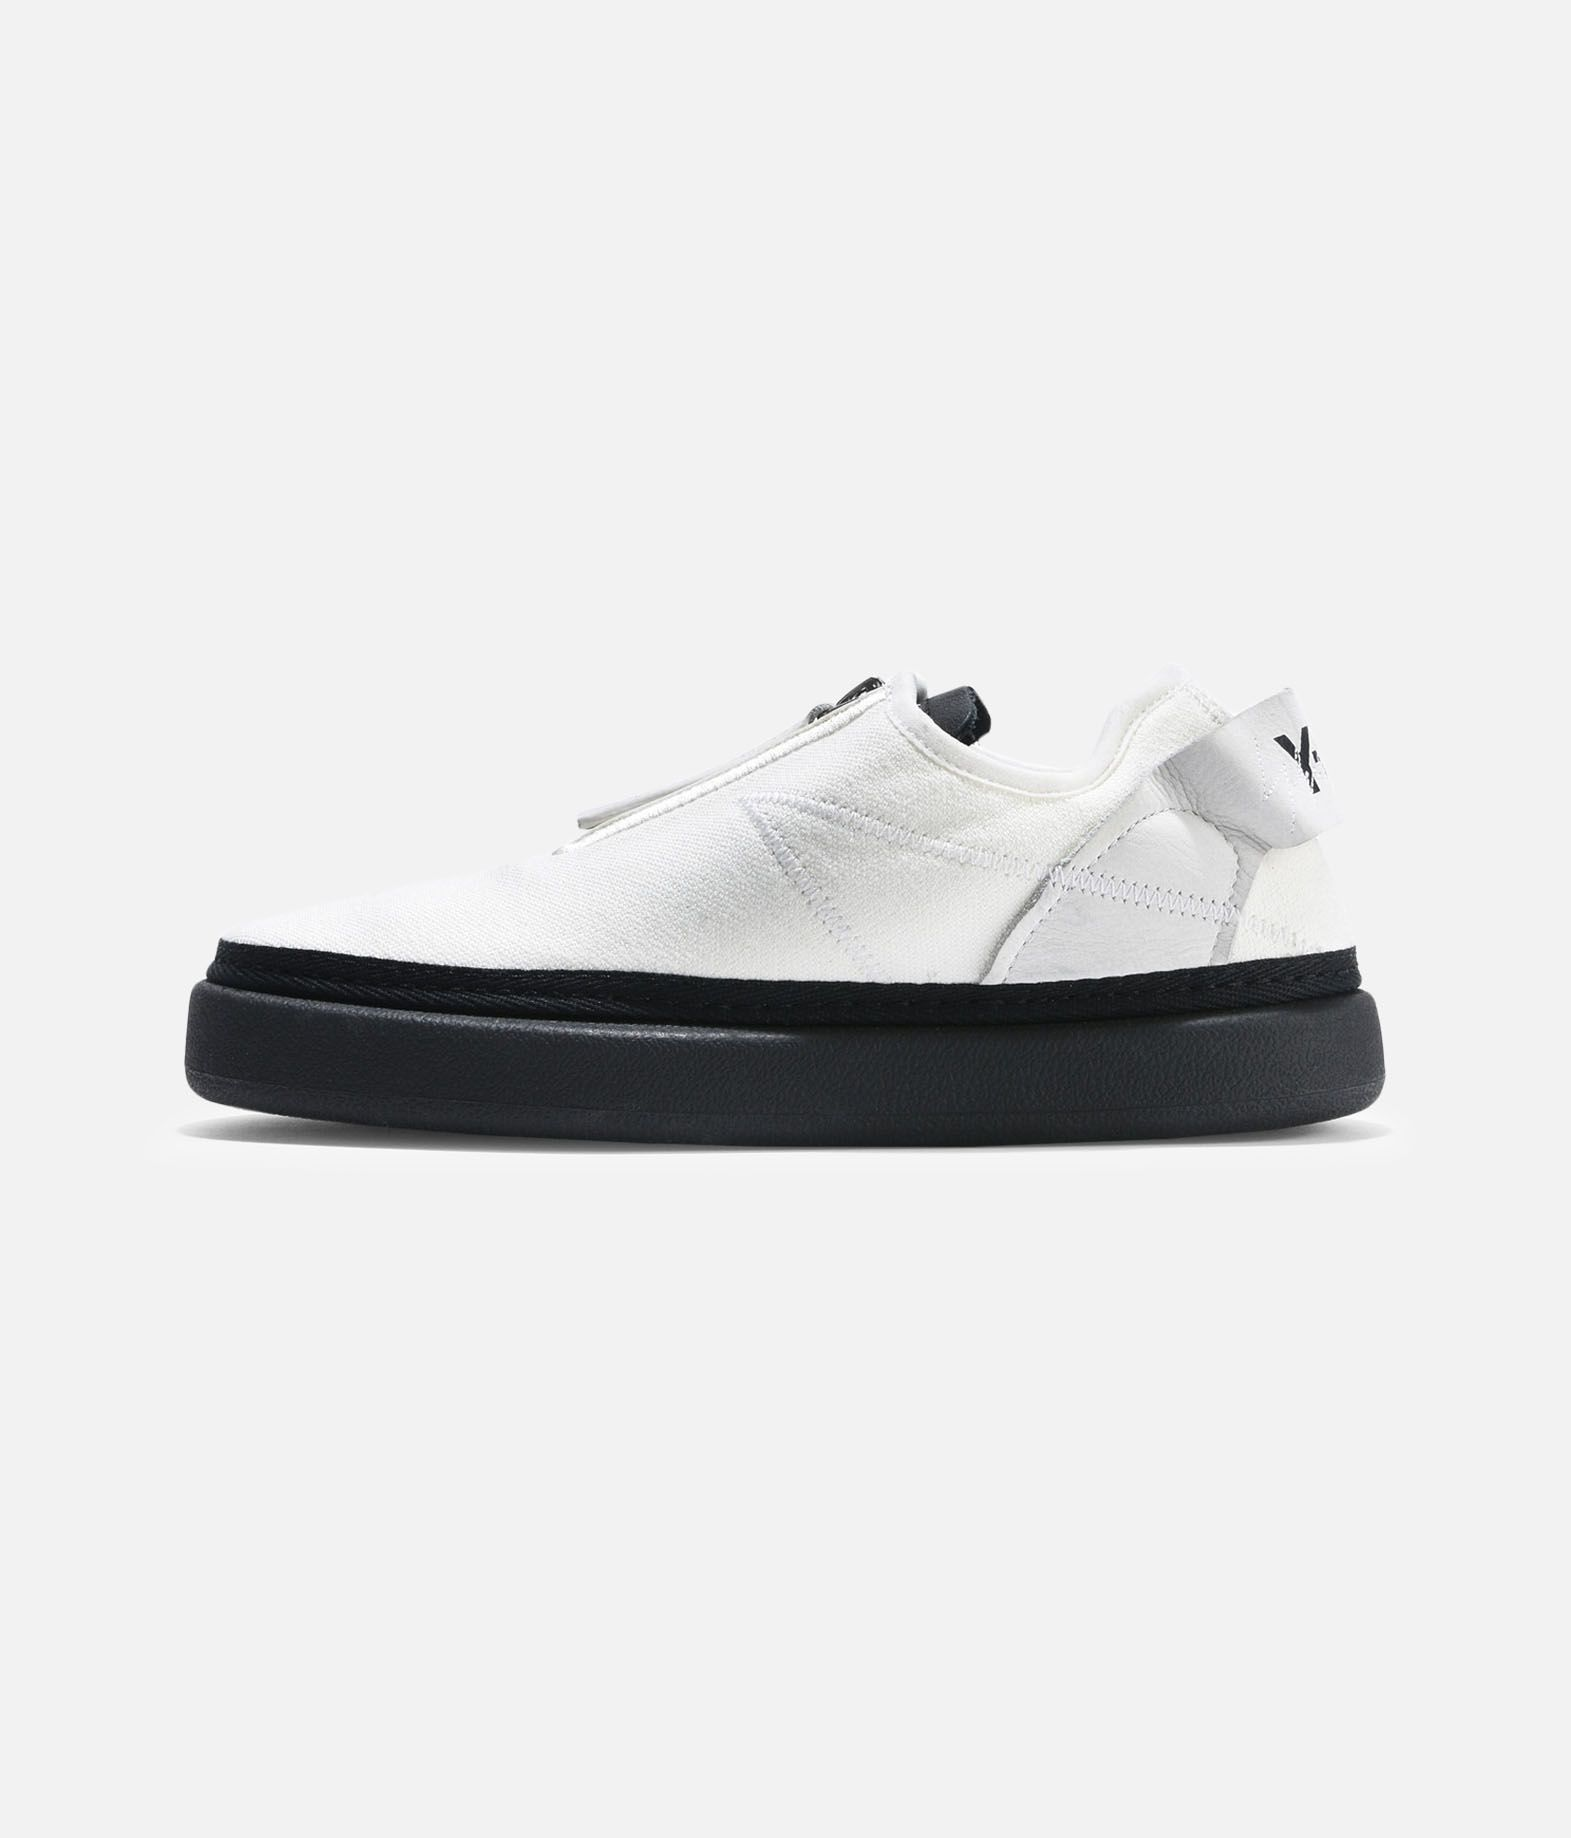 Y-3 Y-3 Comfort Zip Sneakers Woman f